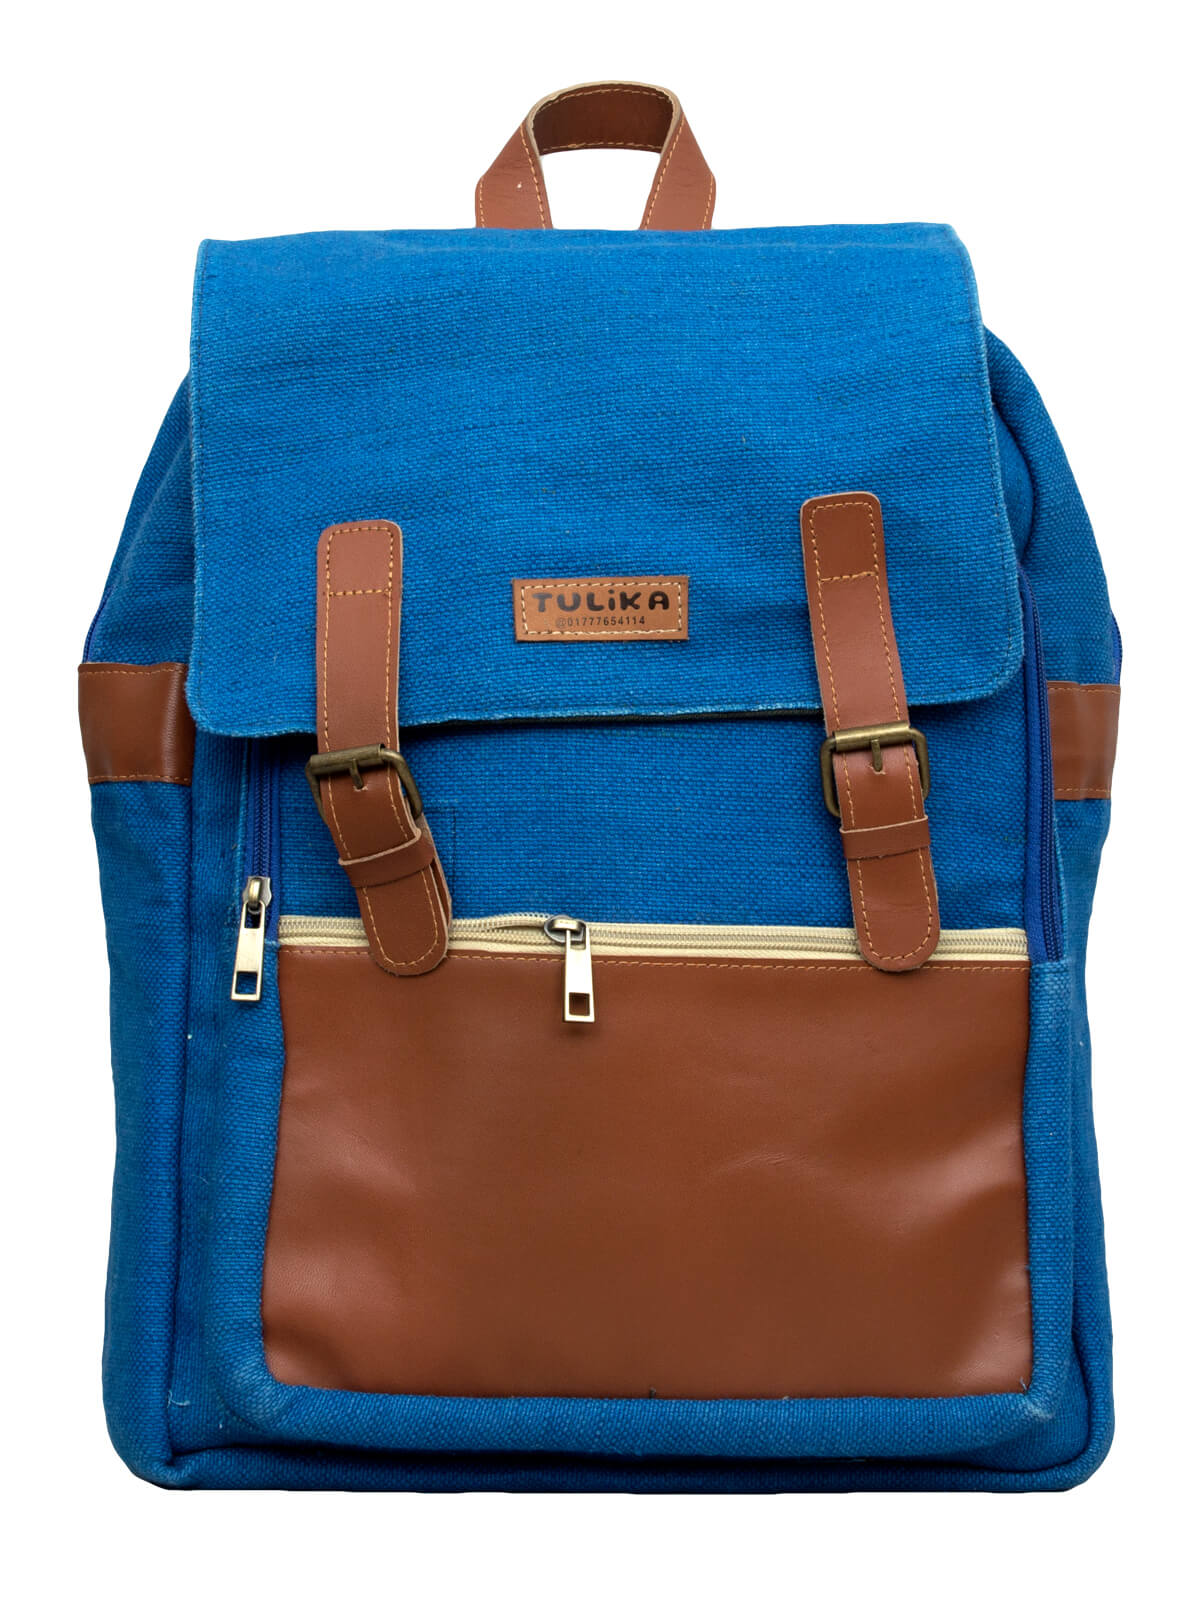 Cobalt Blue Jute Leather School Bag